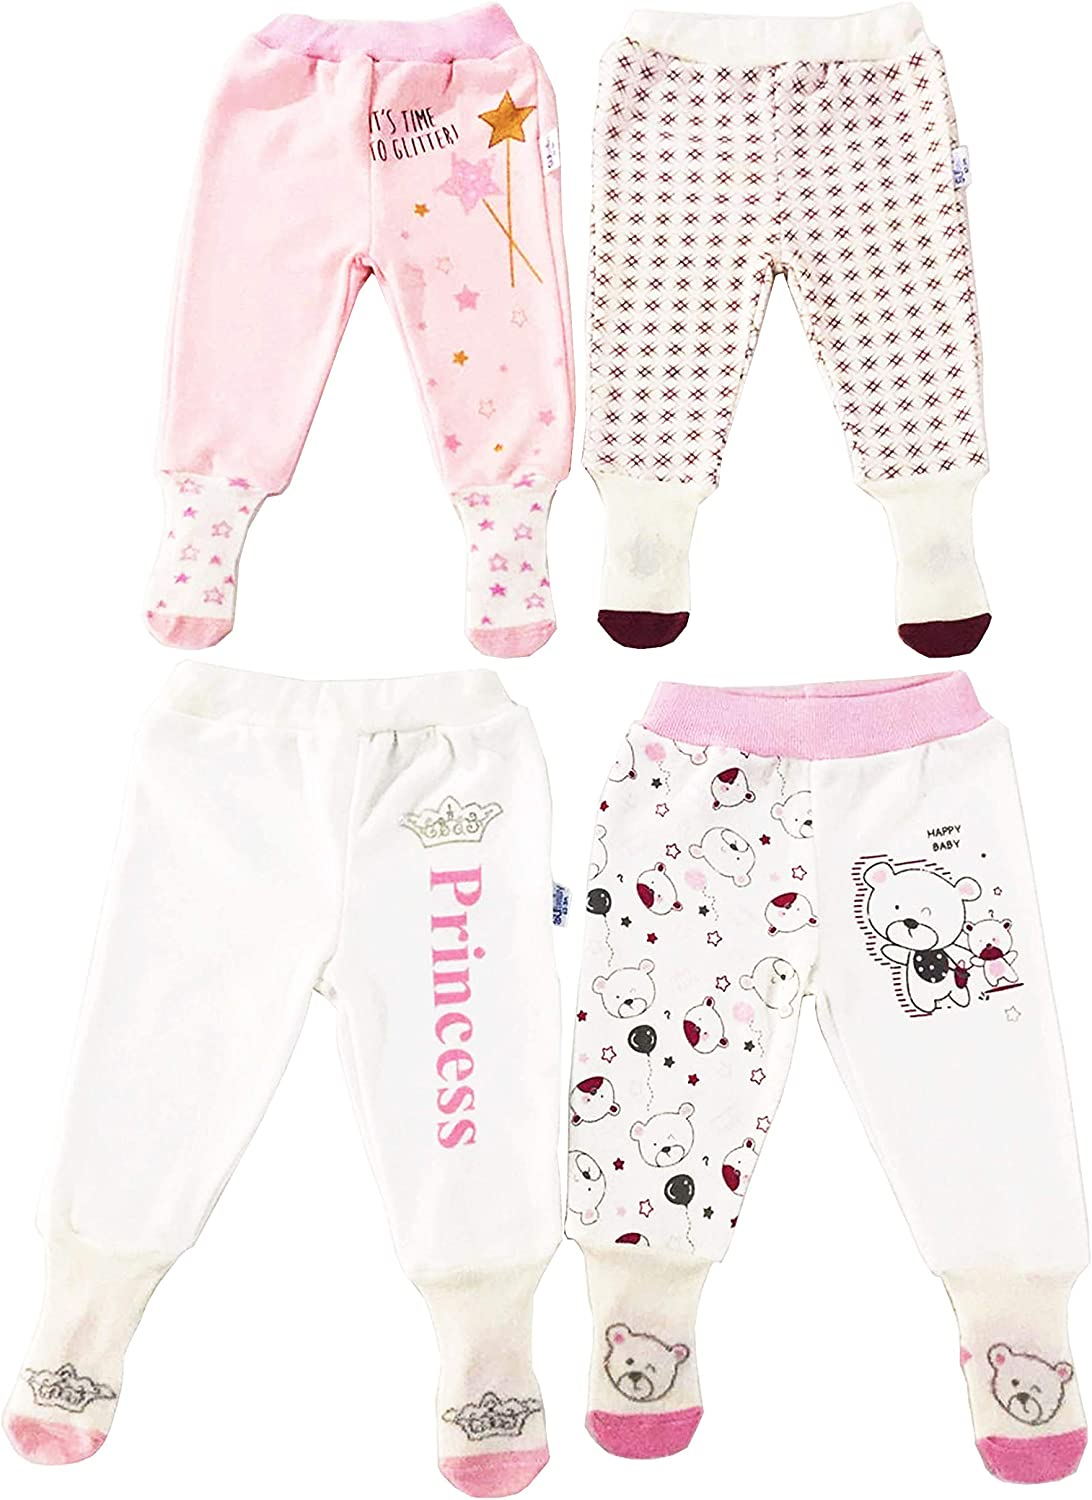 Subaby Baby Infant Toddler 3-6-9-12 Months Pants with Socks 100/% Cotton Footed Bottom 4-Pack Footies for Baby Girls and Boys